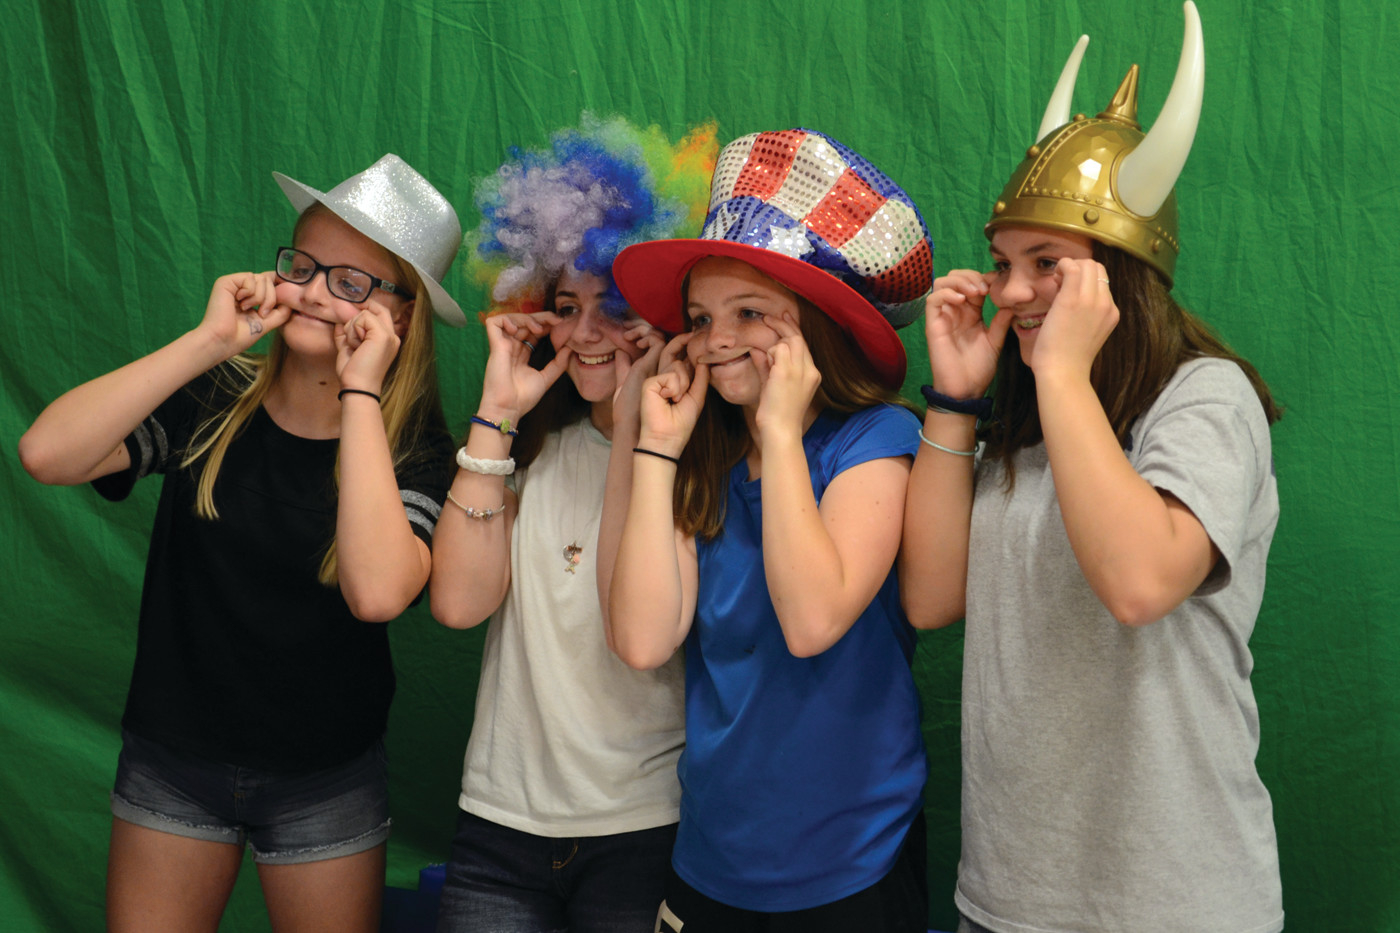 GROUP GOALS: From left to right – Carly Gayman, Madison Giarrusso, Kiley Strain and Hanna Carter enjoyed taking a goofy shot at the photo booth together.